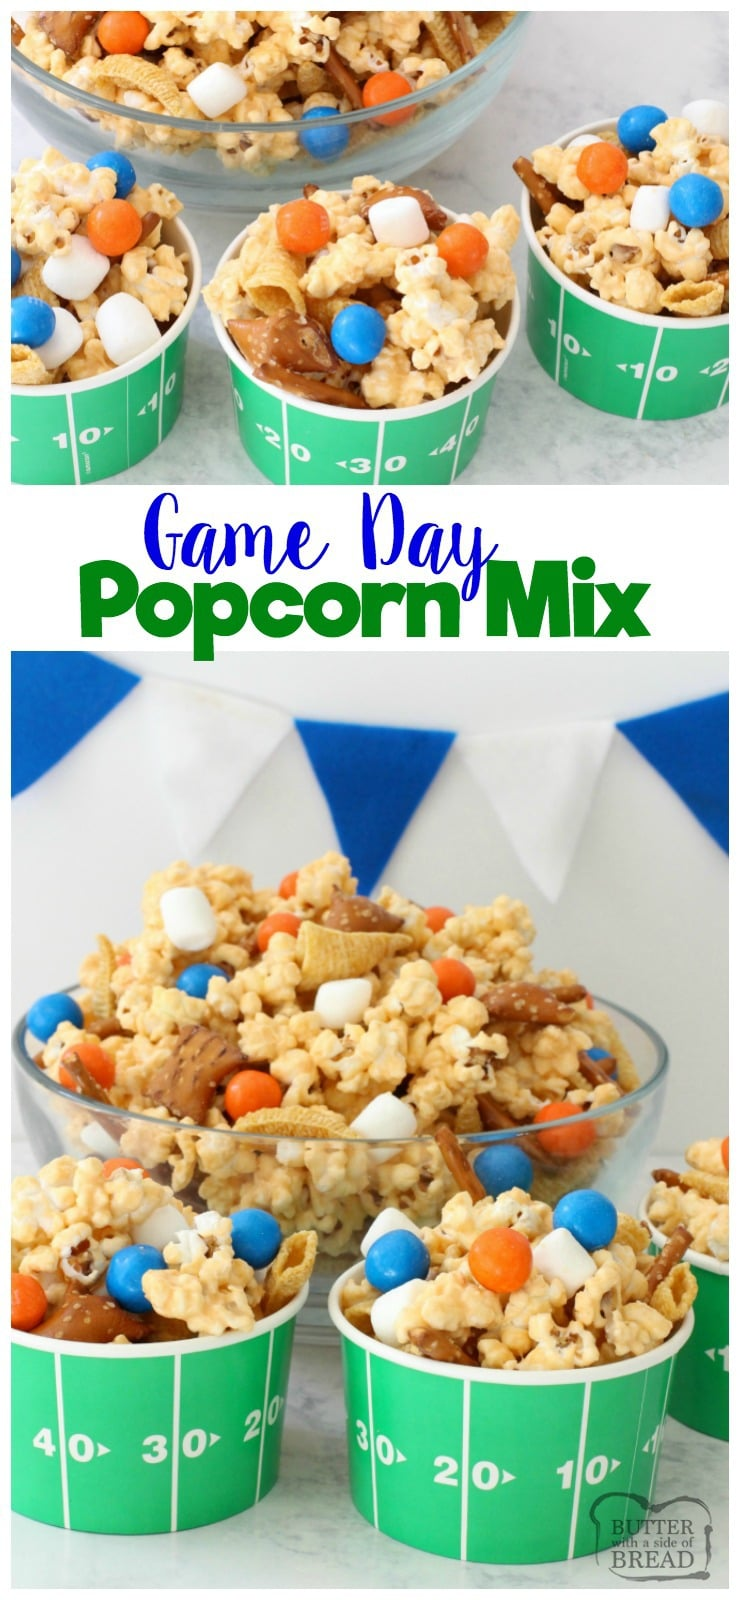 Gameday Popcorn Mix is sweet, salty, and perfect for your crowd of excited sports fans (especially when you easily customize it to your team's colors)! #popcornrecipe